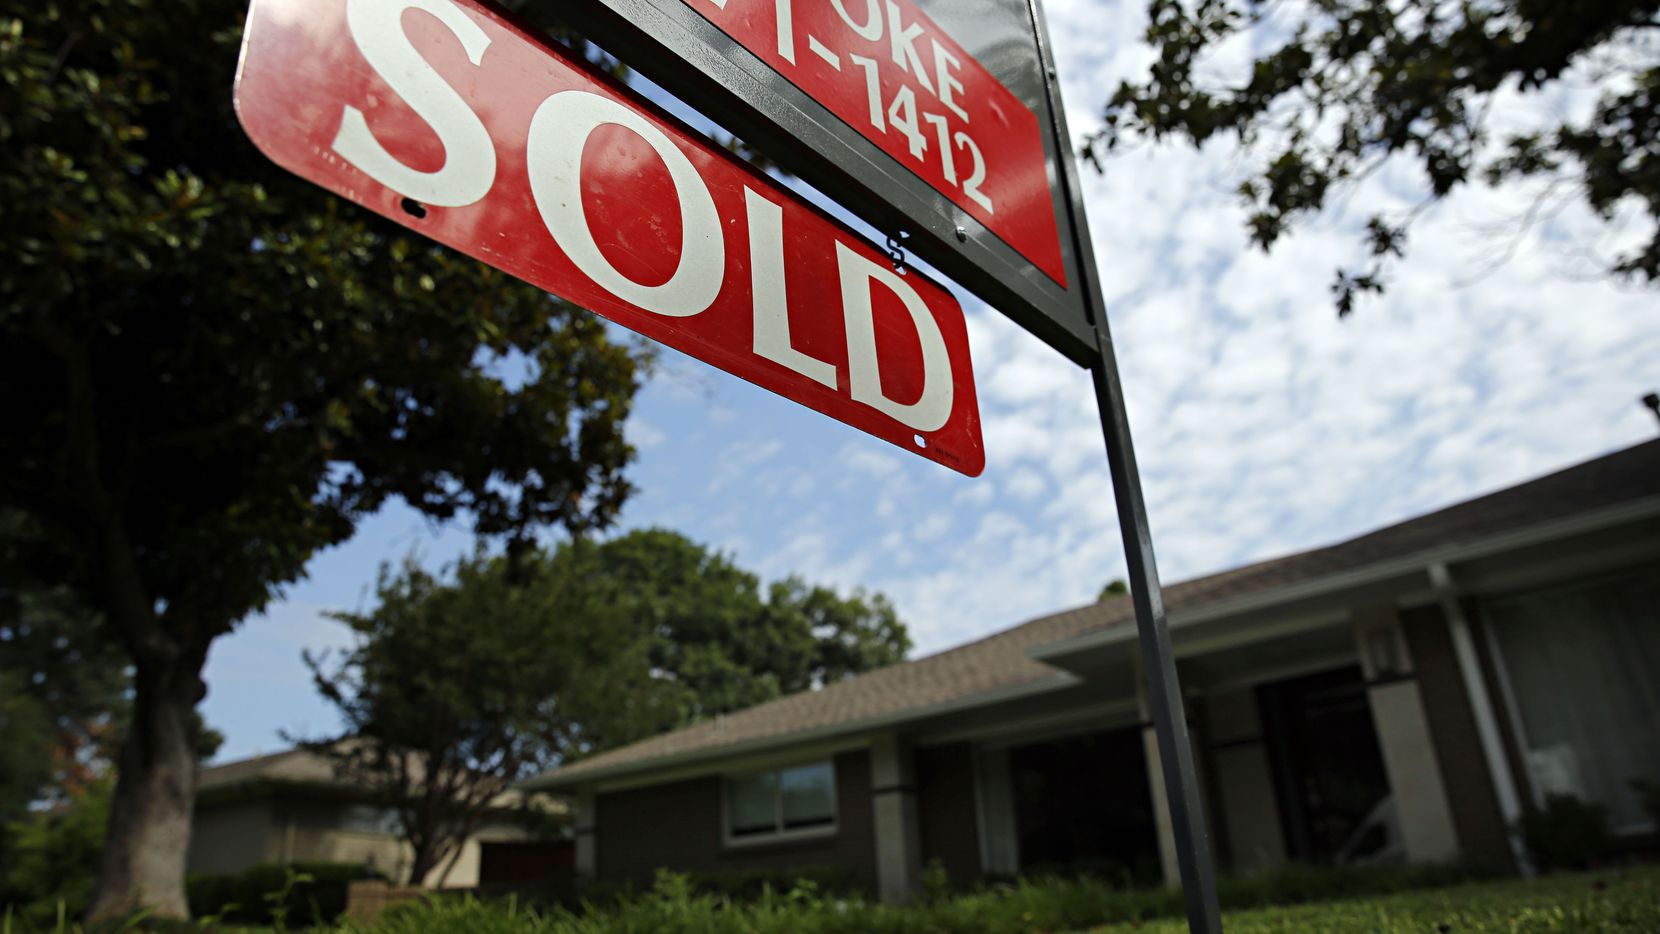 Austin and San Antonio had the biggest home price gains among major Texas markets.